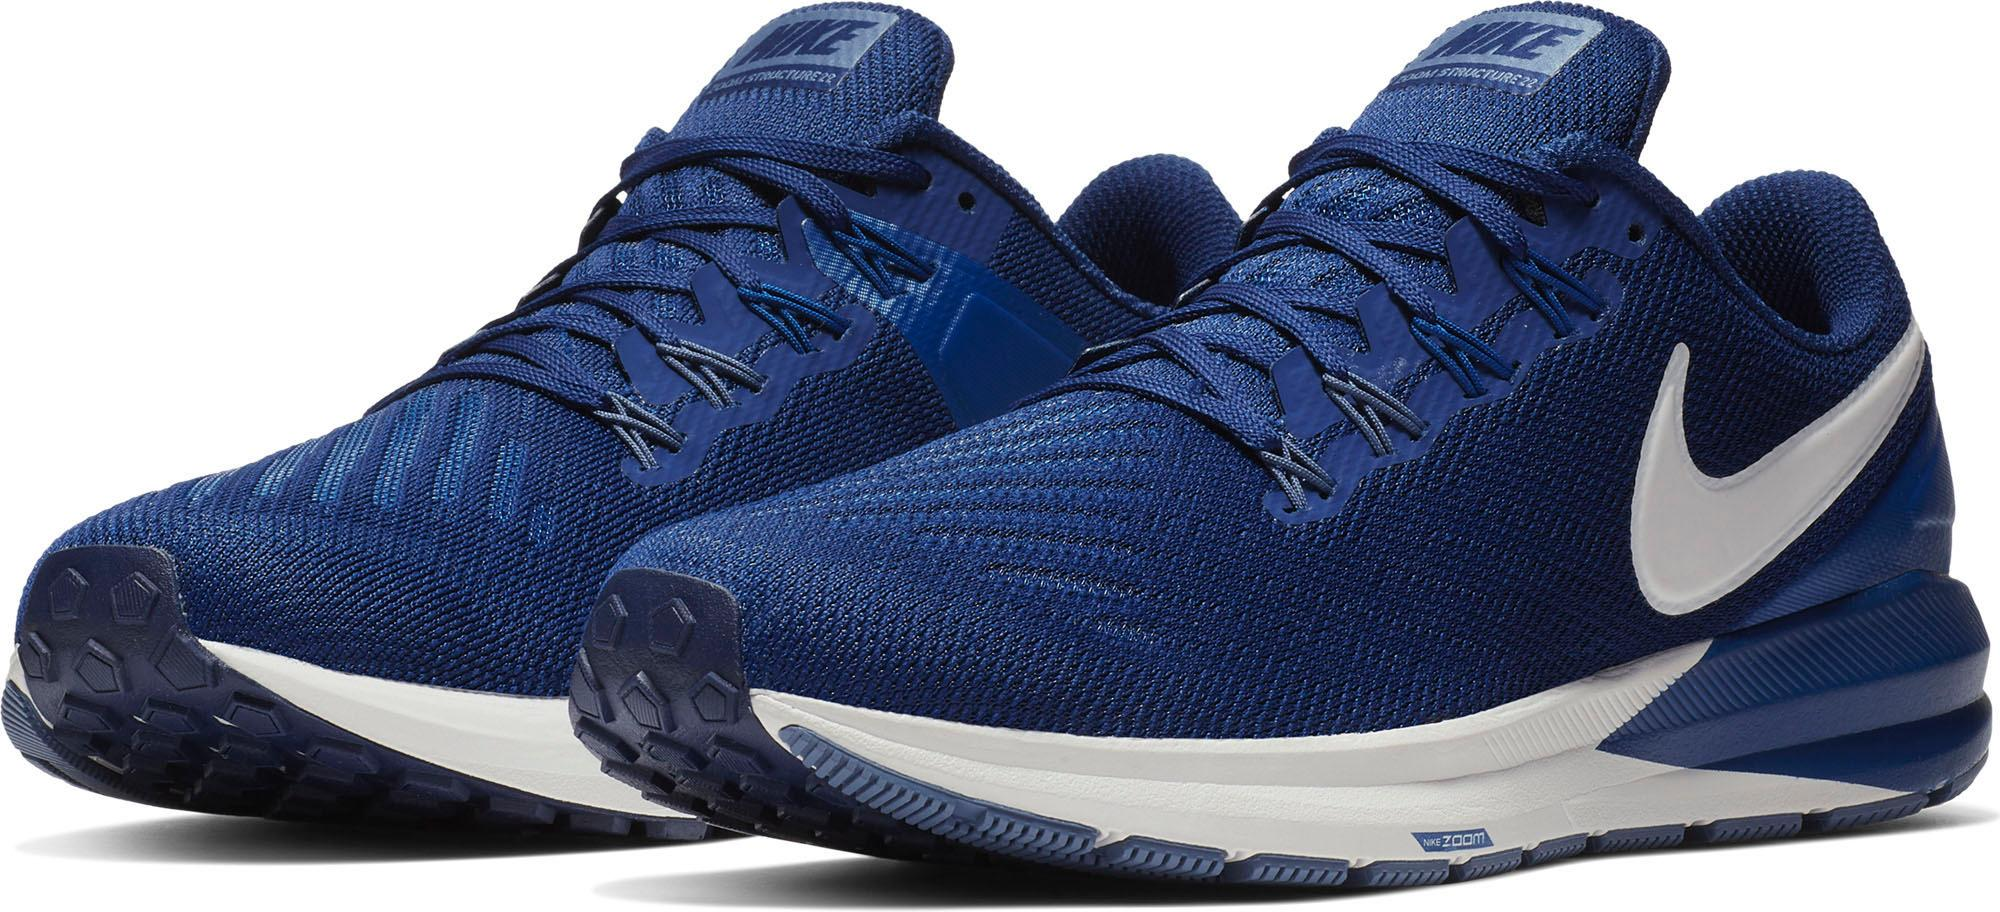 Nike Laufschuh Air Zoom Structure 22